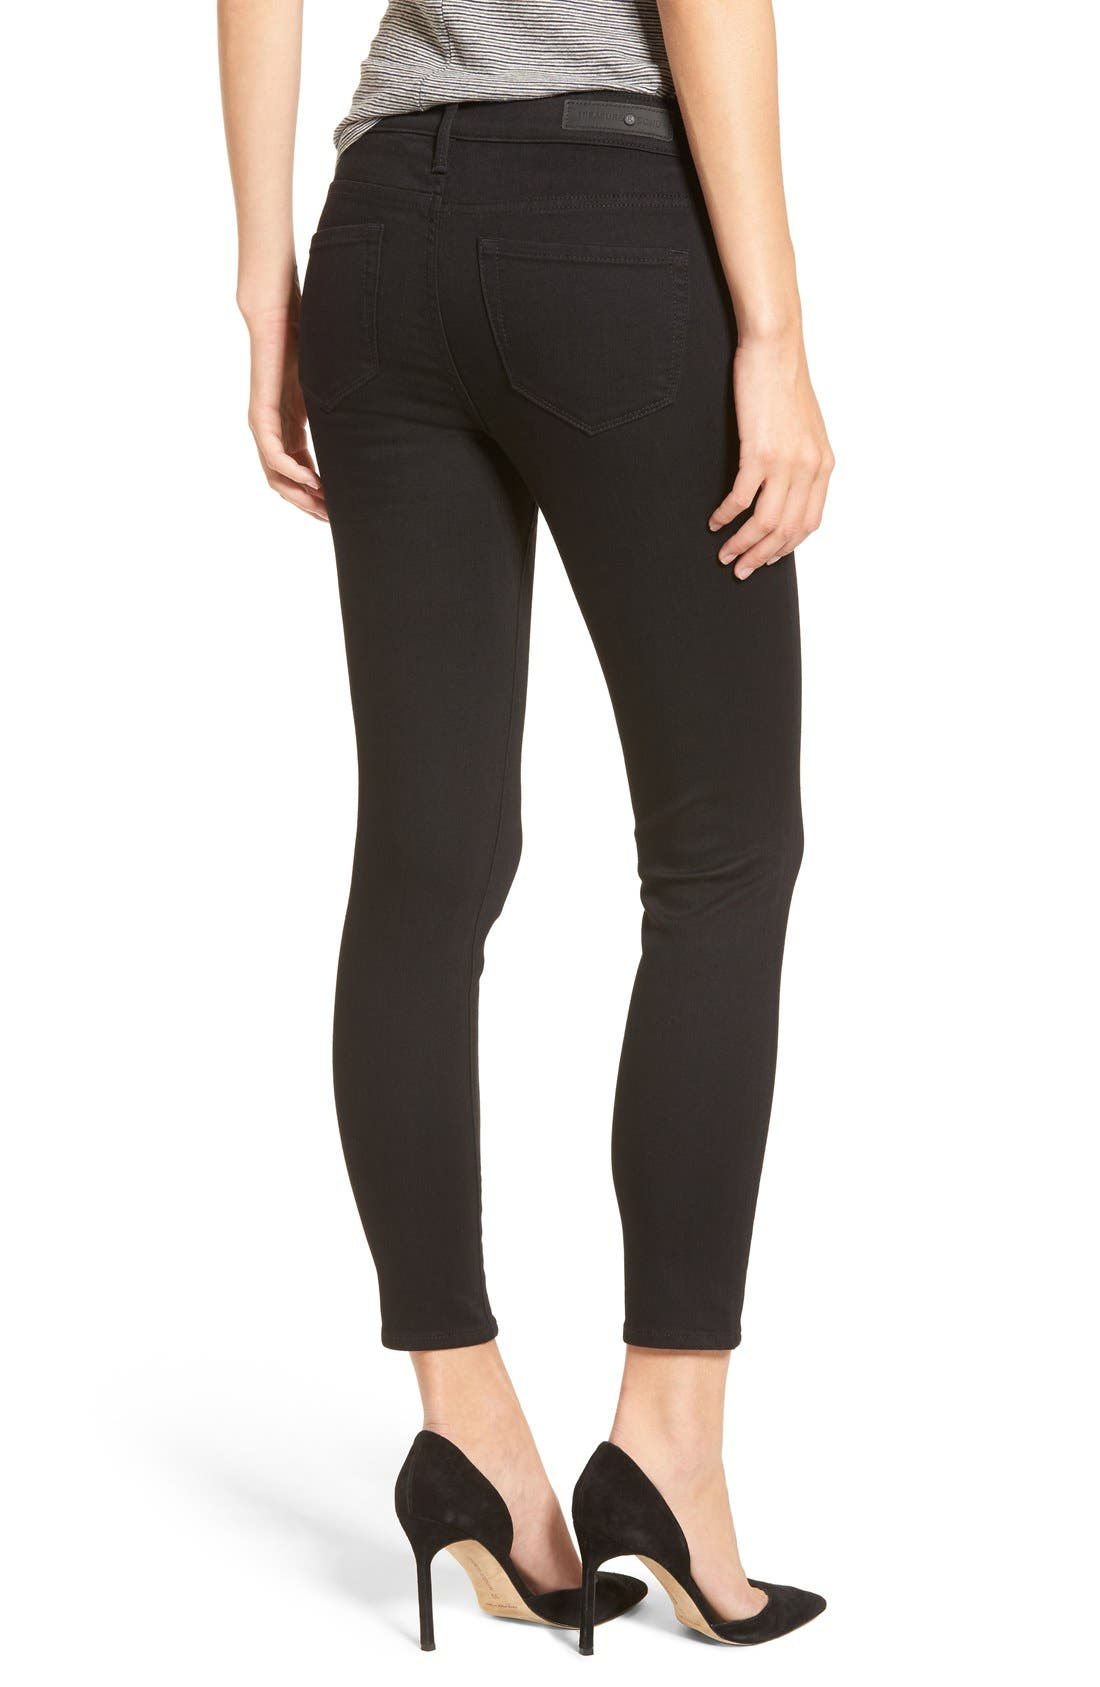 Legacy Crop Skinny Jeans,                             Alternate thumbnail 10, color,                             001